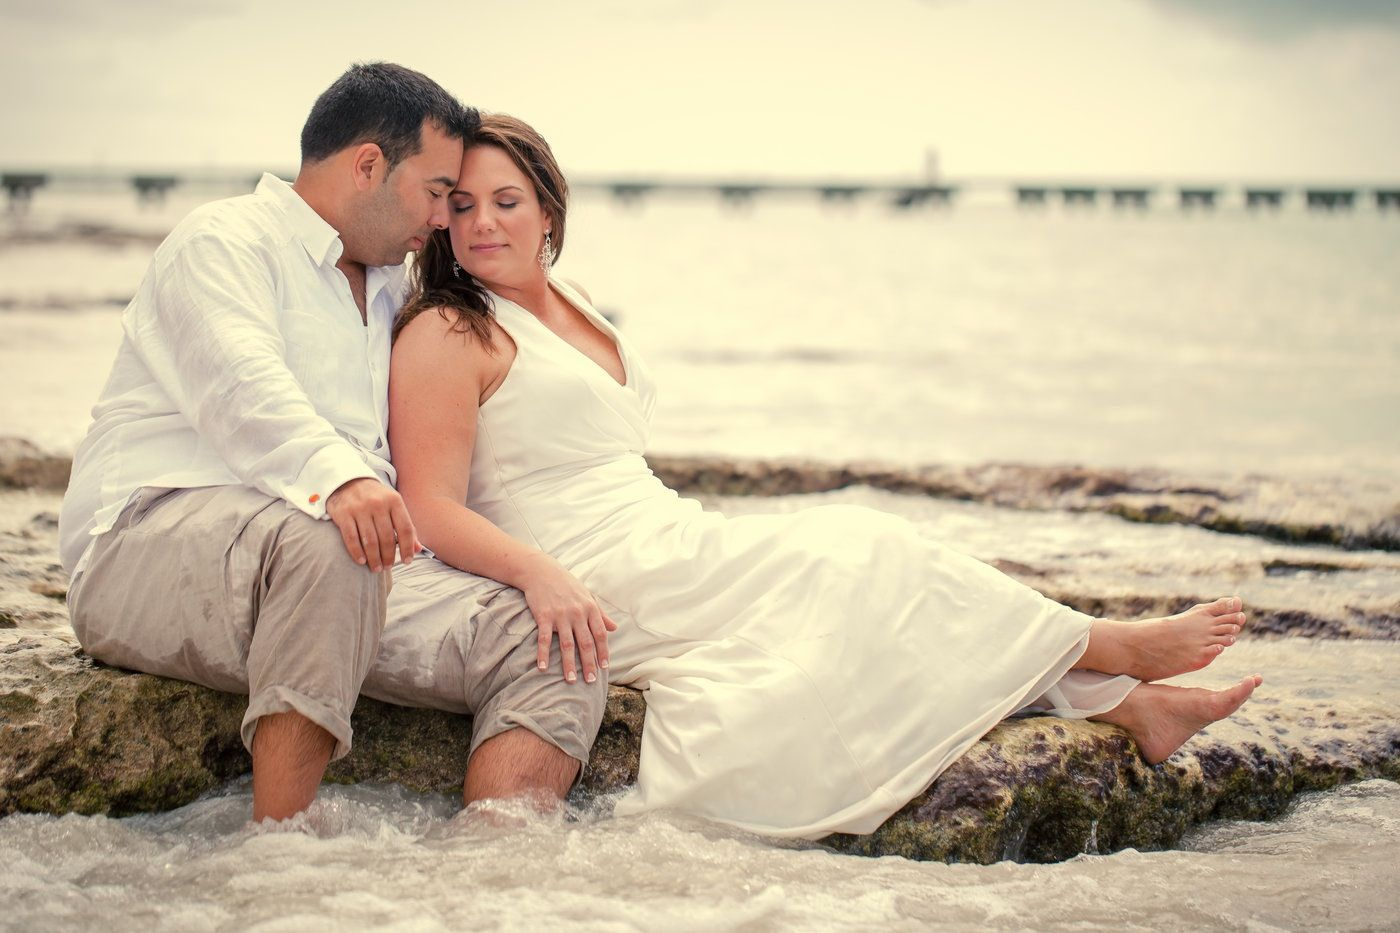 forums theknot ideas feedback suggestions would like also older couples